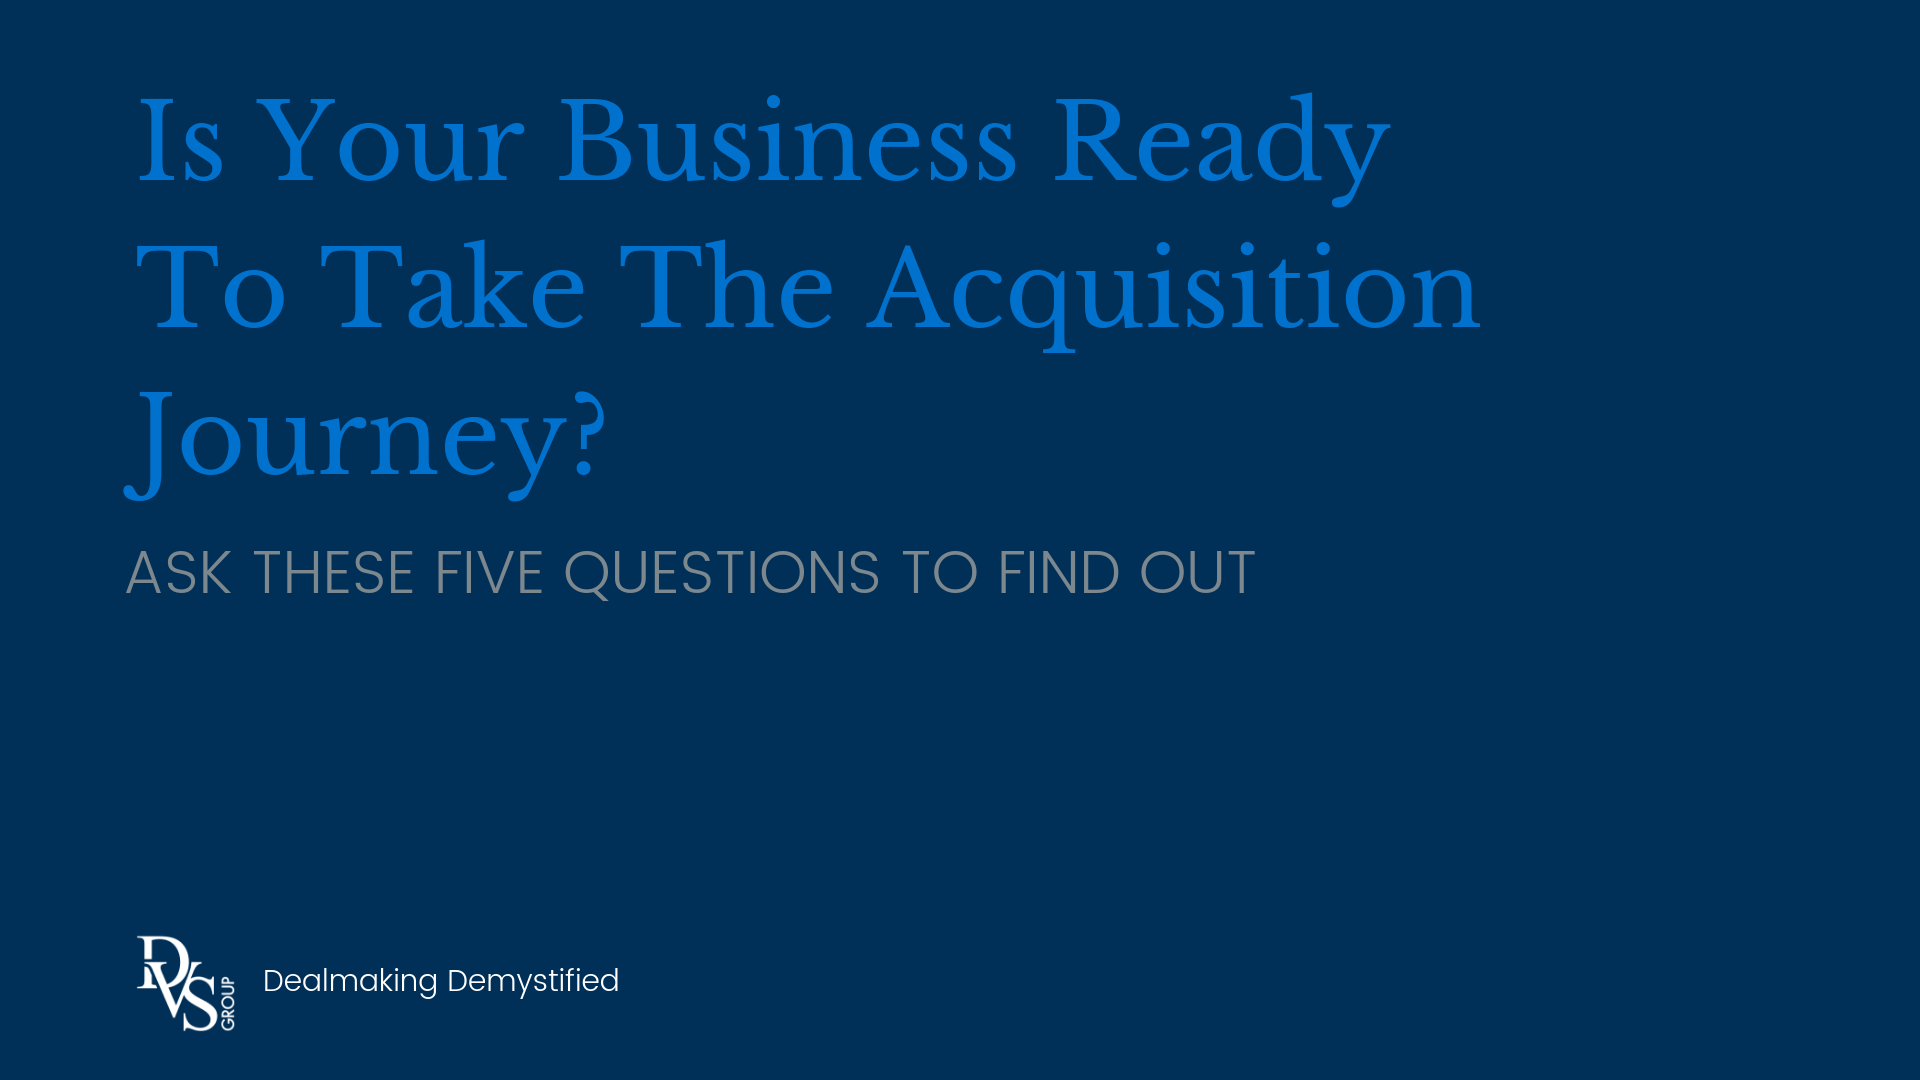 Title Image: Is Your Business Ready to Take the Acquisition Journey?